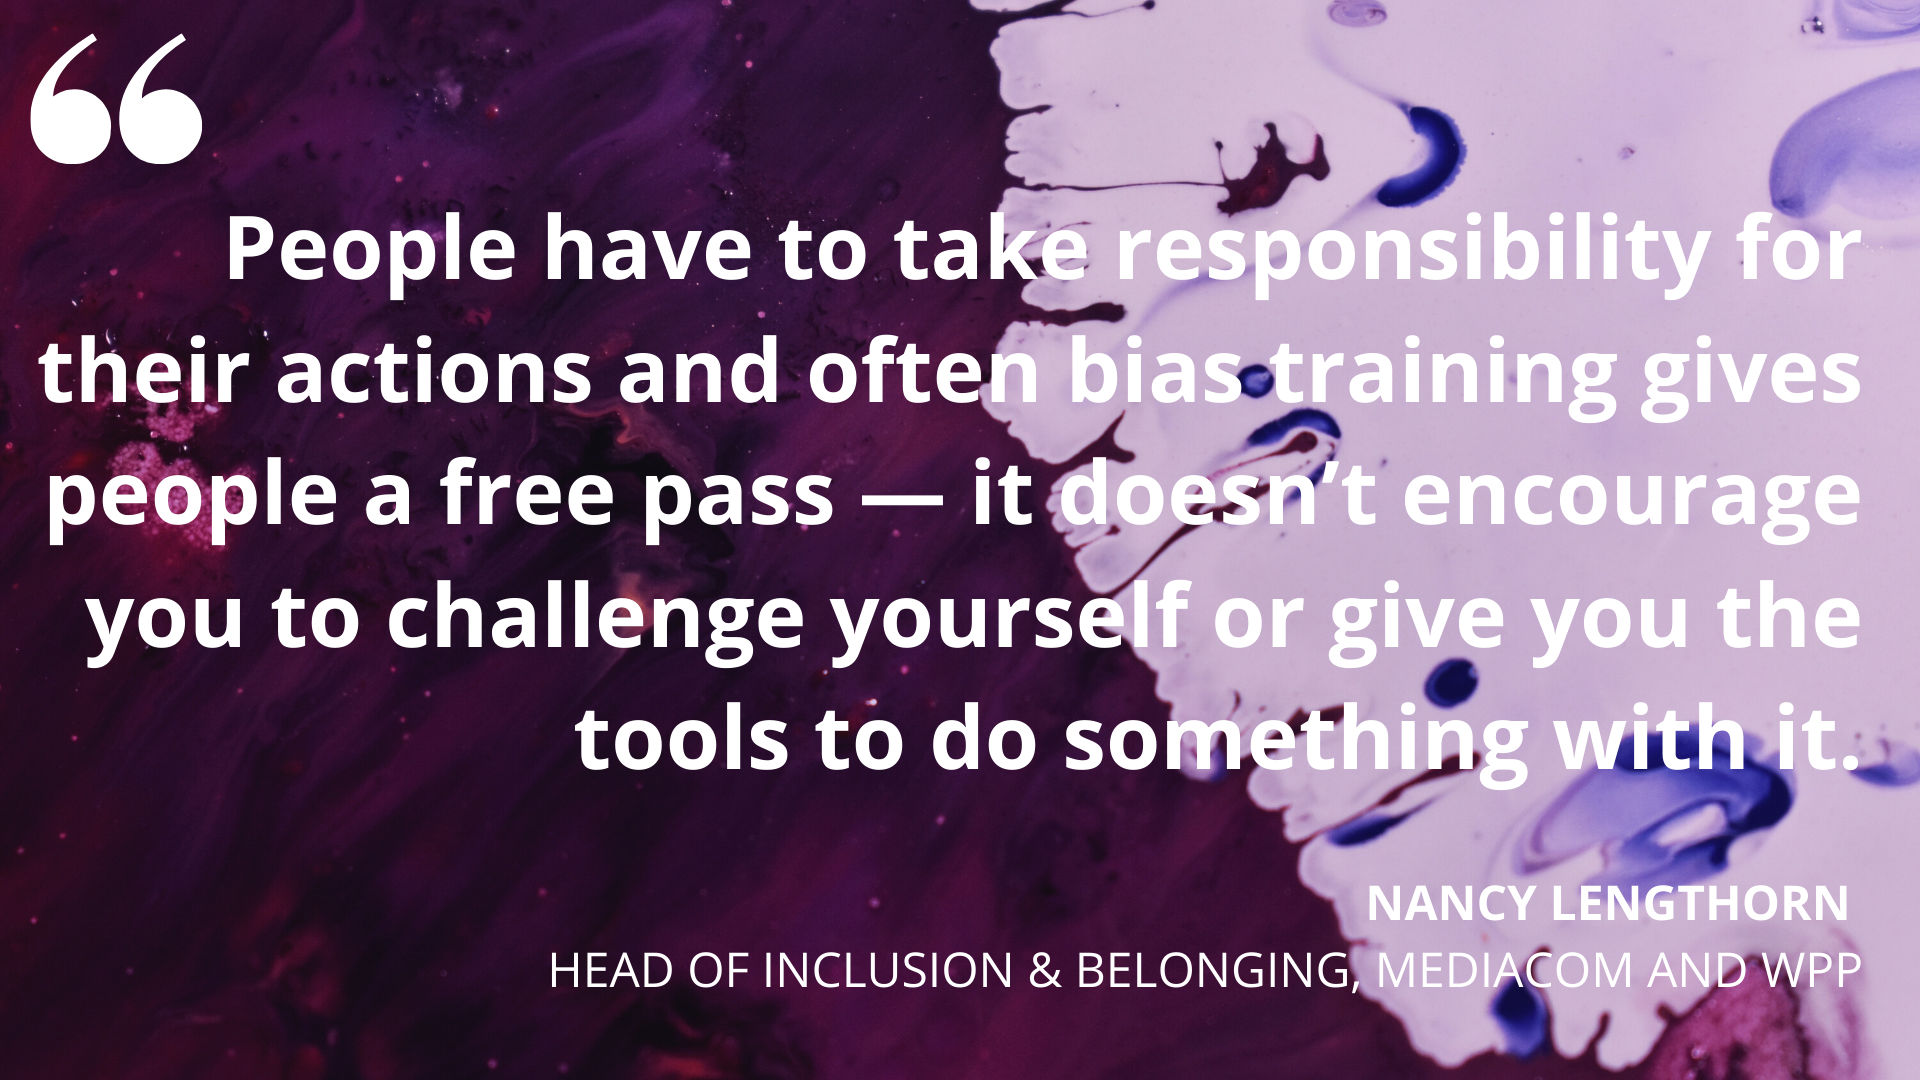 'People have to take responsibility for their actions and often bias training gives people a free pass — it doesn't encourage you to challenge yourself or give you the tools to do something with it' Nancy Lengthorn, Head of Inclusion & Belonging, Mediacom & WPP